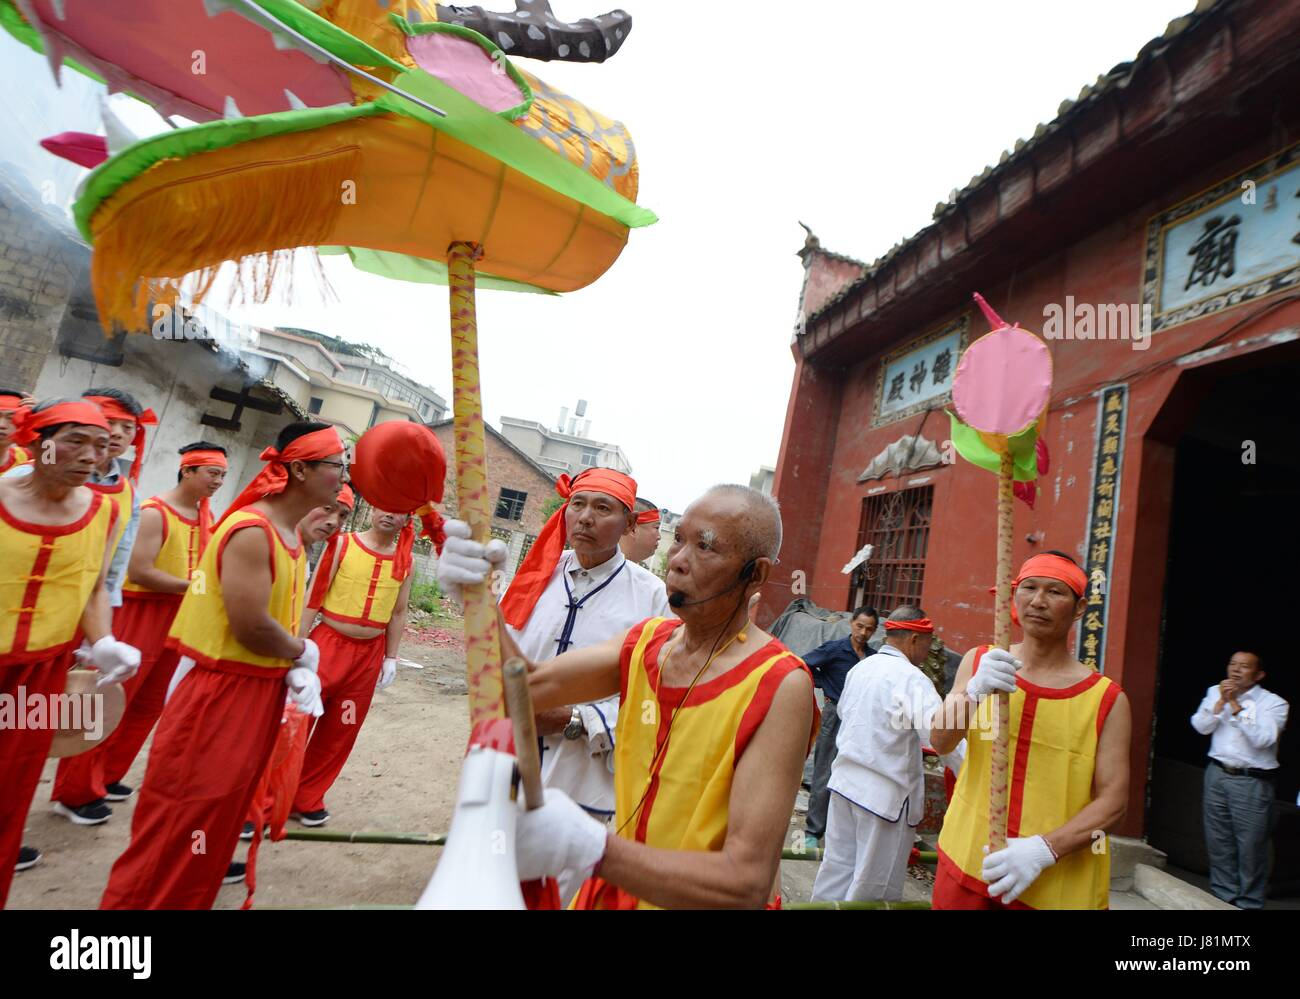 Pingxiang. 26th May, 2017. Villagers are ready to depart during a land boat parade in Wusi Village of Xiangdong - Stock Image